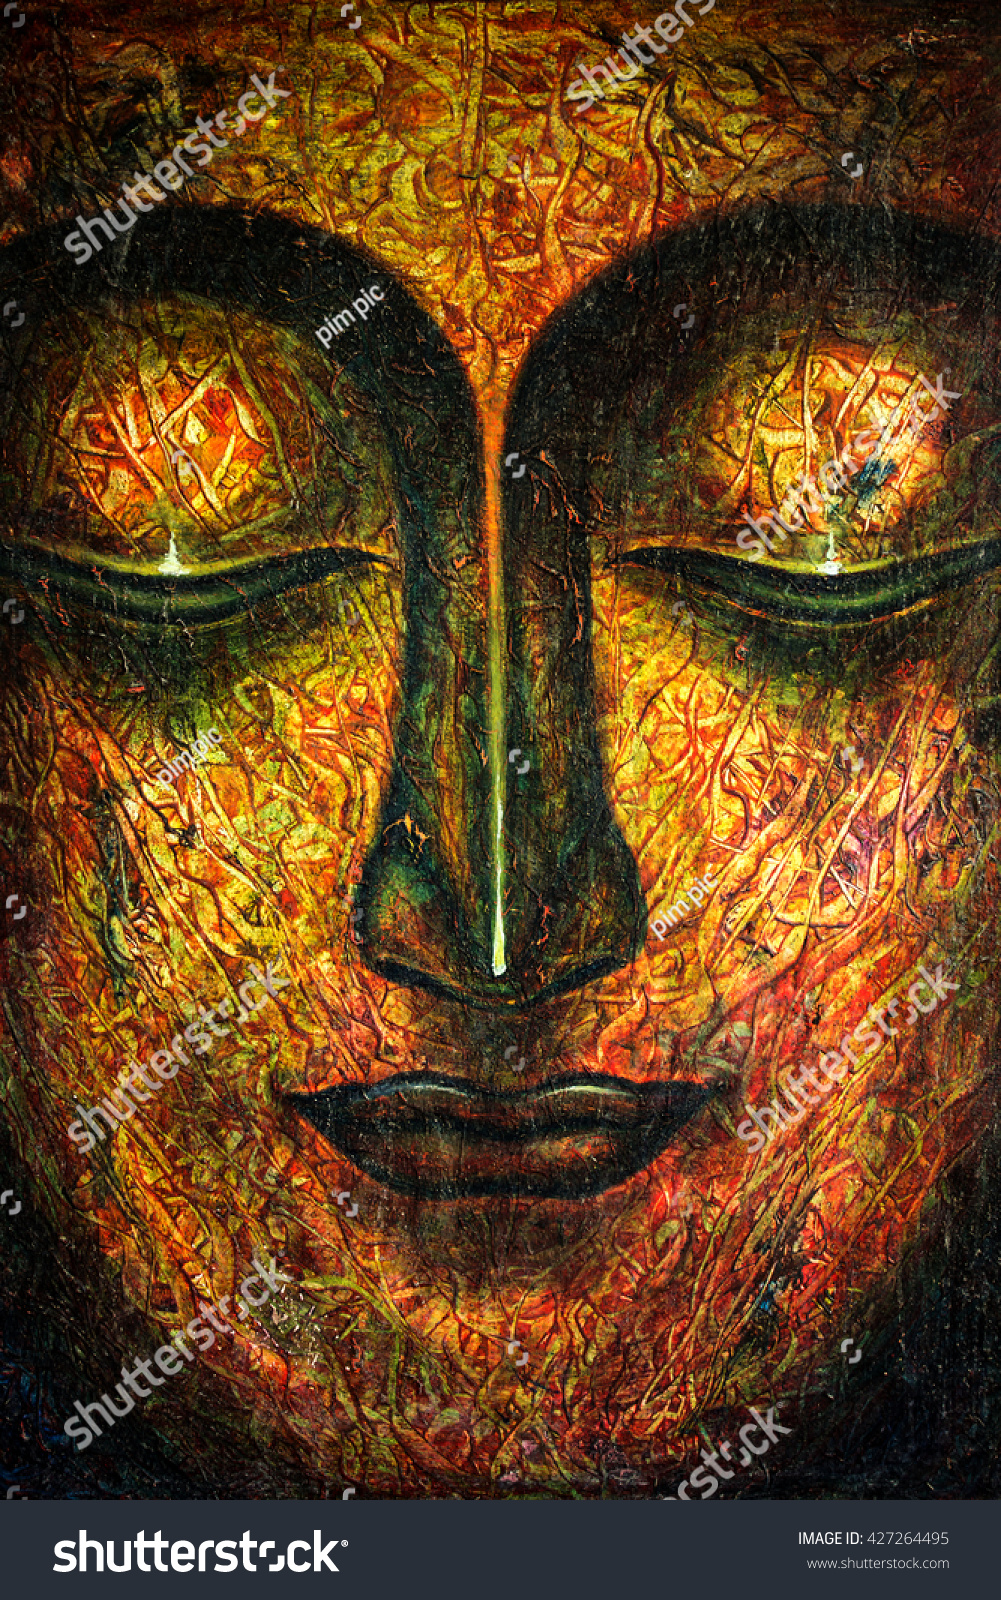 Oil painting by hand buddha face stock illustration for Texture painting on canvas